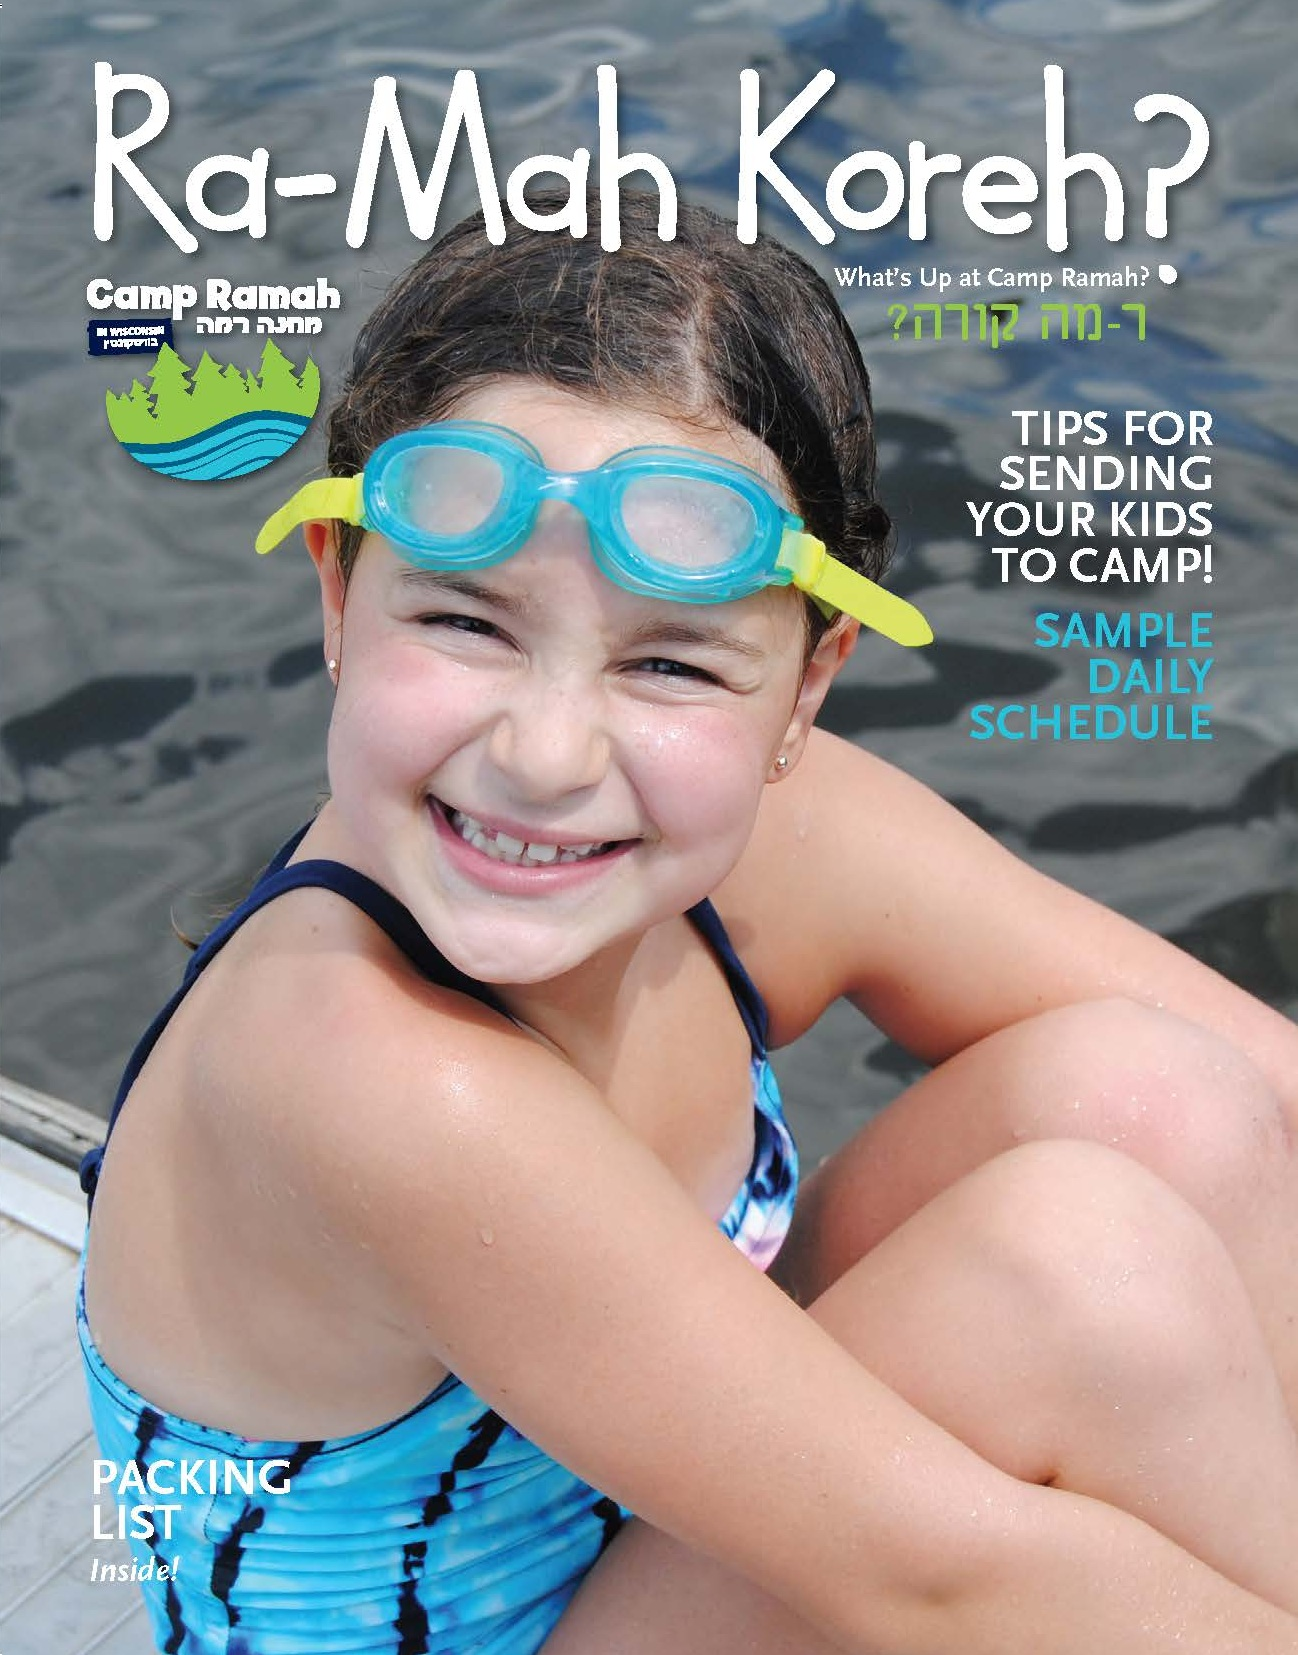 Click the image above to check out our magazine for new campers!